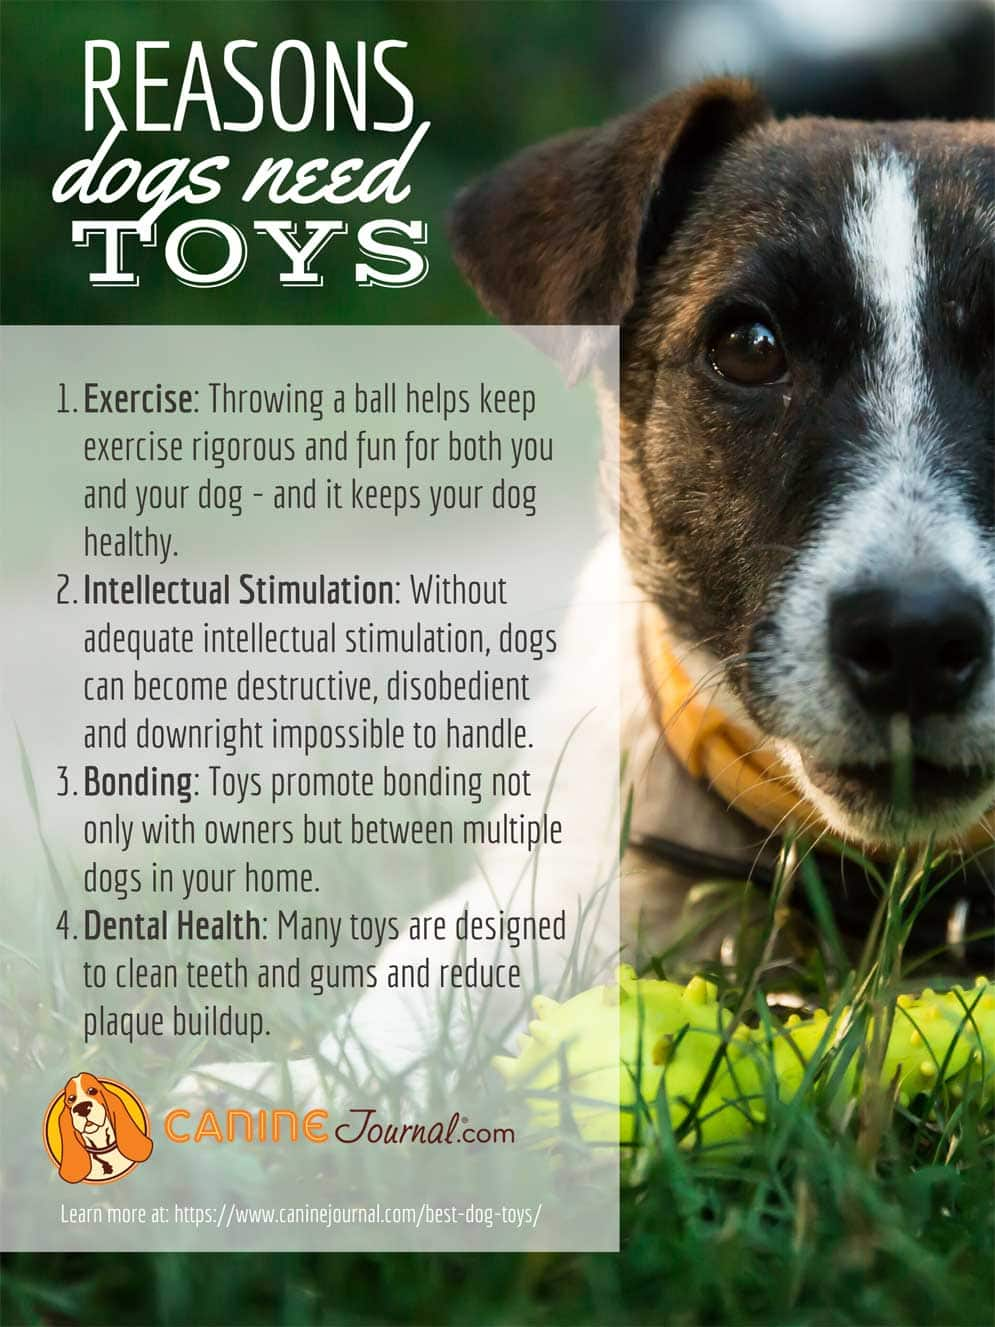 4 Reasons Dogs Need Toys